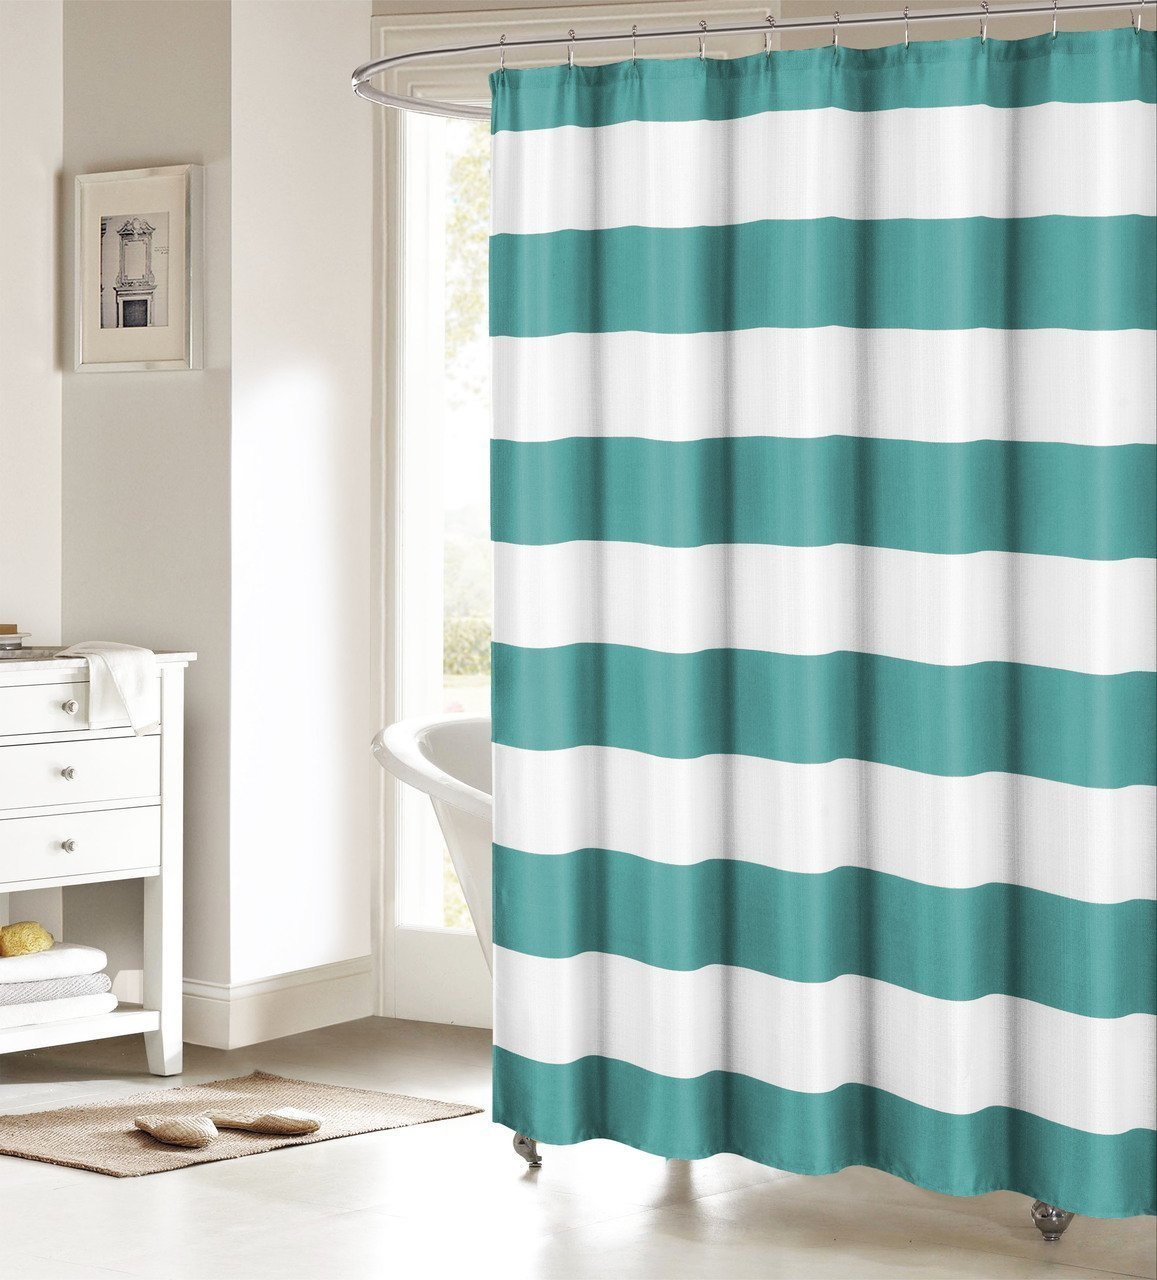 Peva shower curtain nautical design - Memory Home Fabric Shower Curtain Nautical Stripe Design Teal And White Bathroom Decor Waterproof Polyester Shower